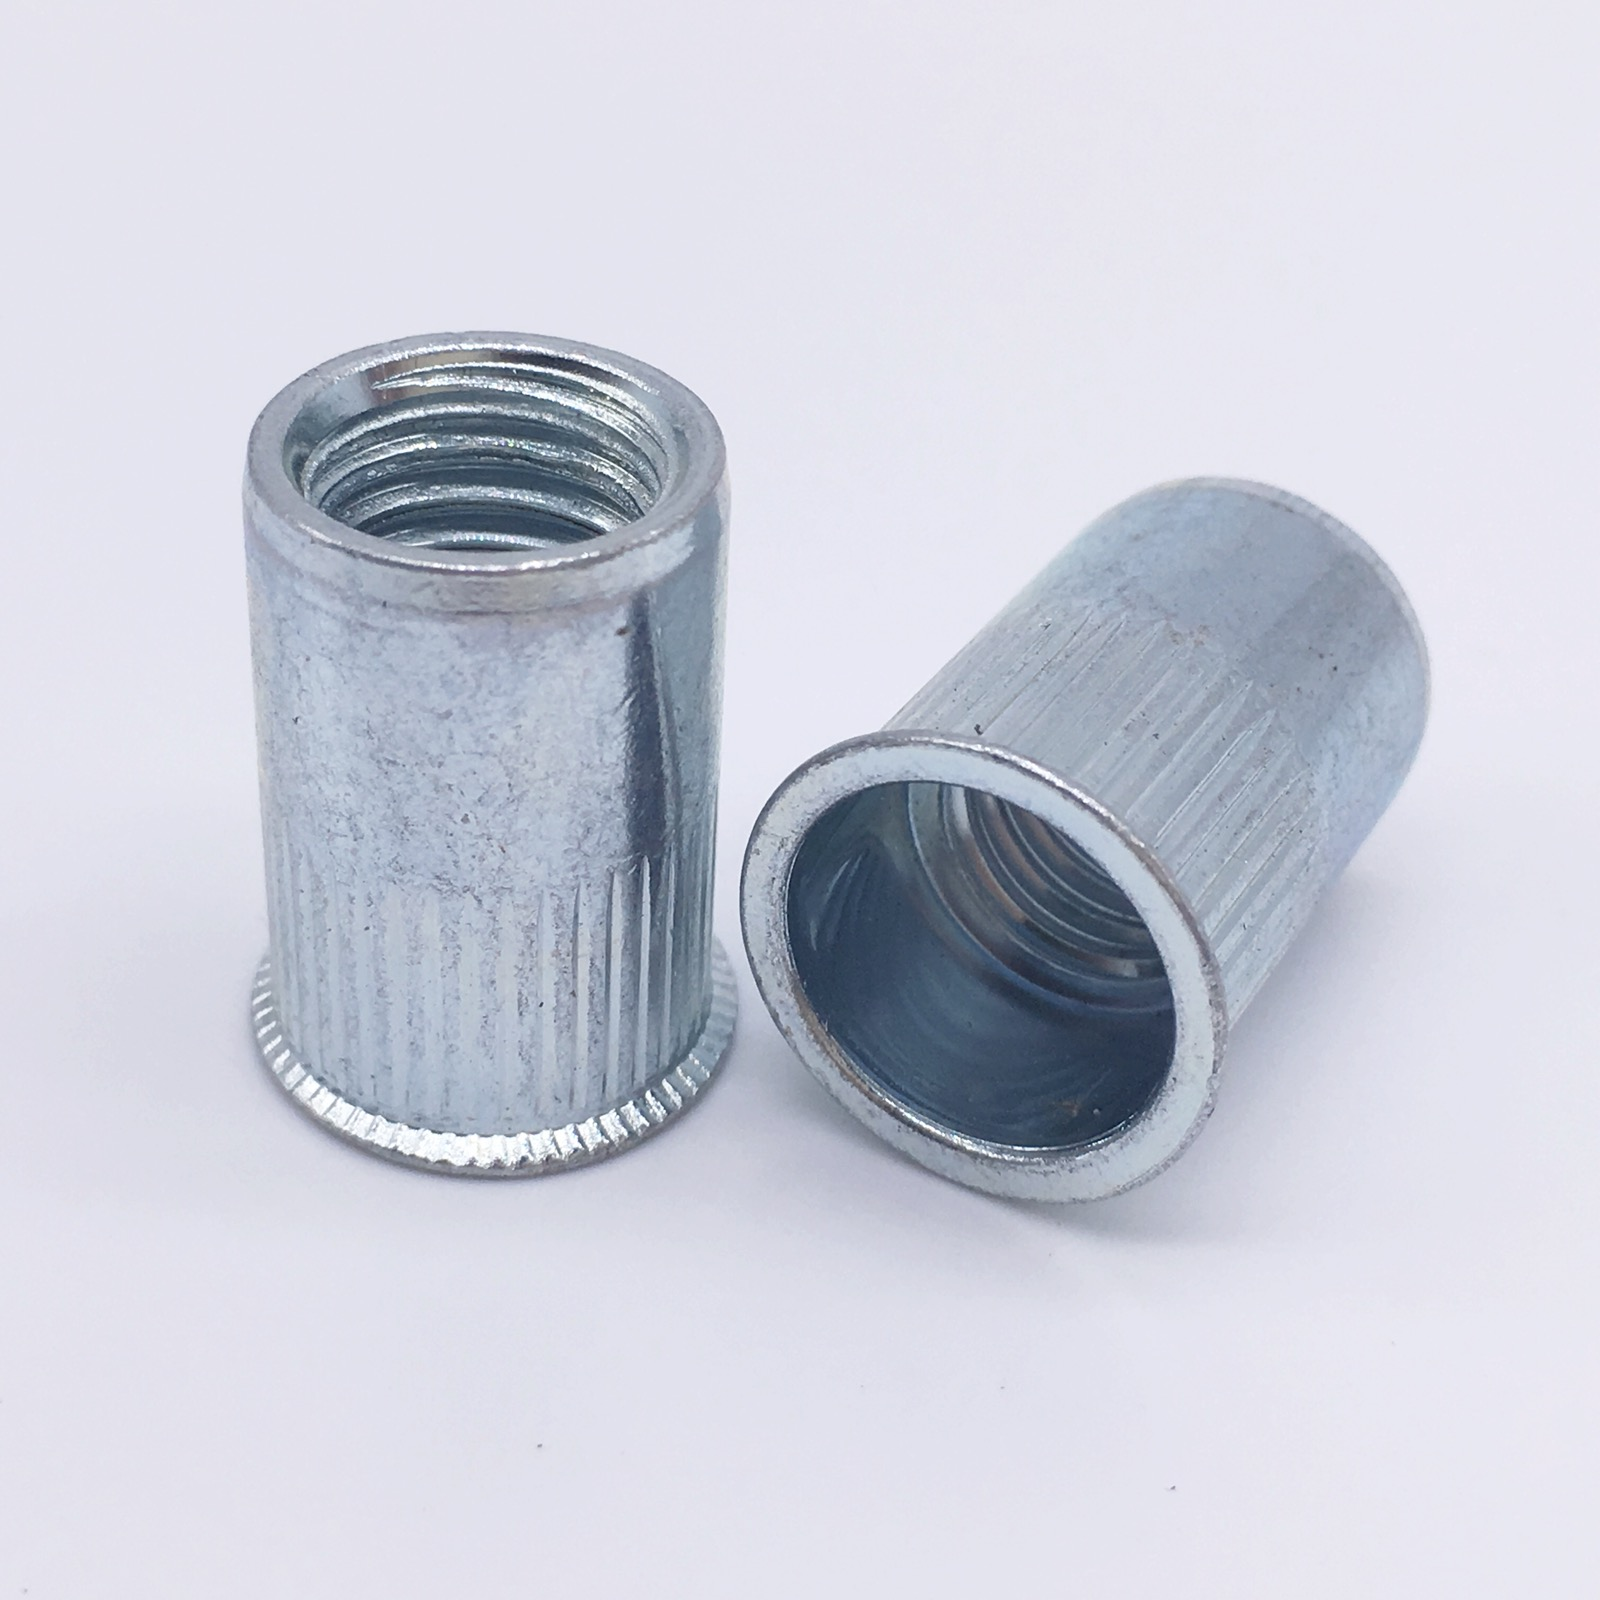 Rivet Nuts Threaded Inserts Blind Nuts Nutserts Rivnut M3 M4 M5 M6 M8 M10 M12 Small Head Countersunk Zinc Plated